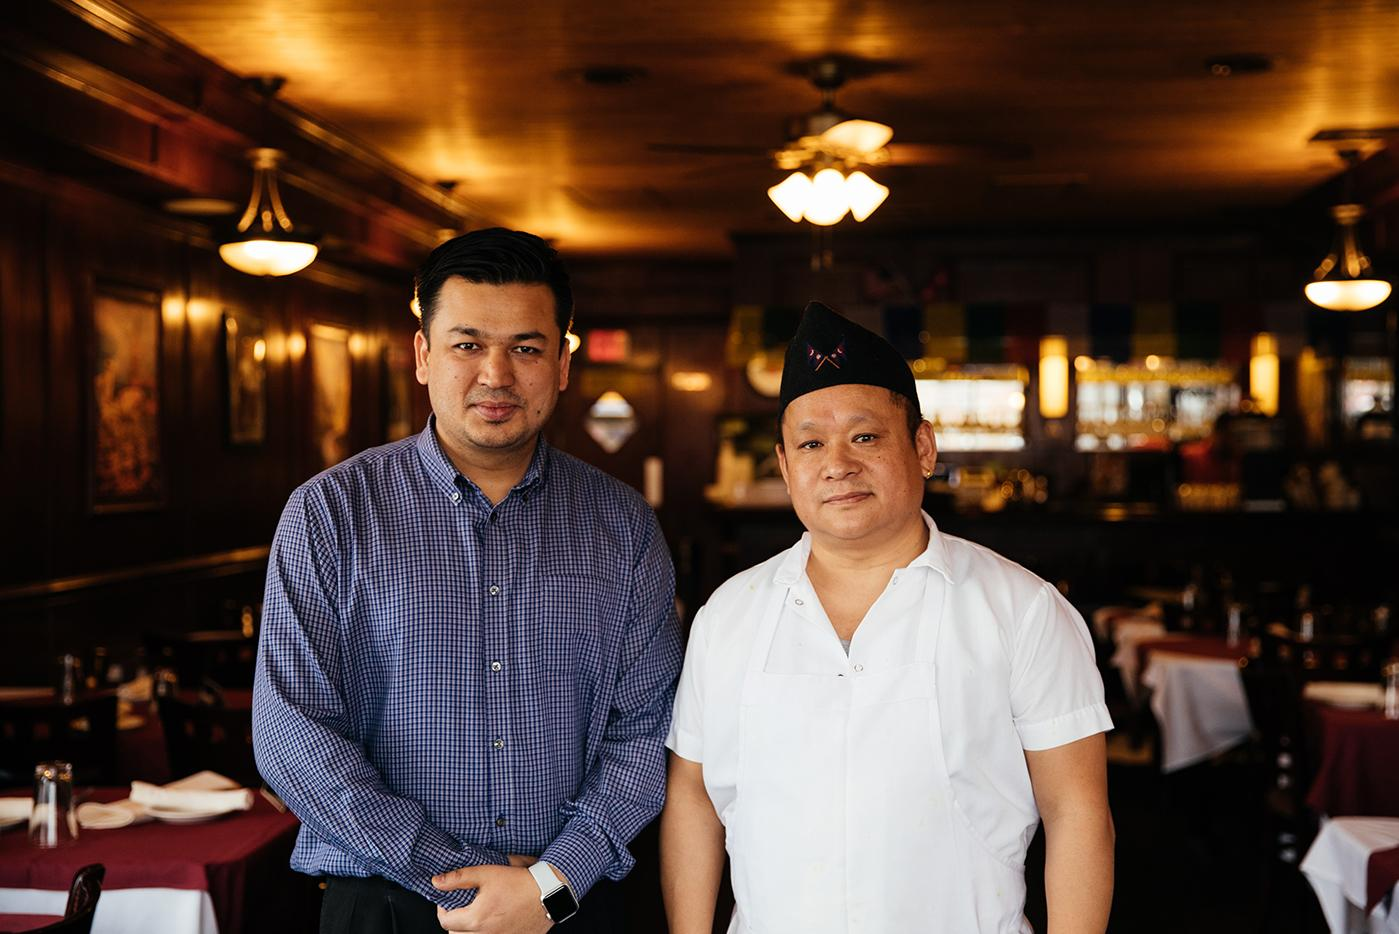 Himalayan Sherpa Kitchen co-owner Raj Thapa with chef and co-owner Bhim Rai. Photo: Sandy Noto for WTTW